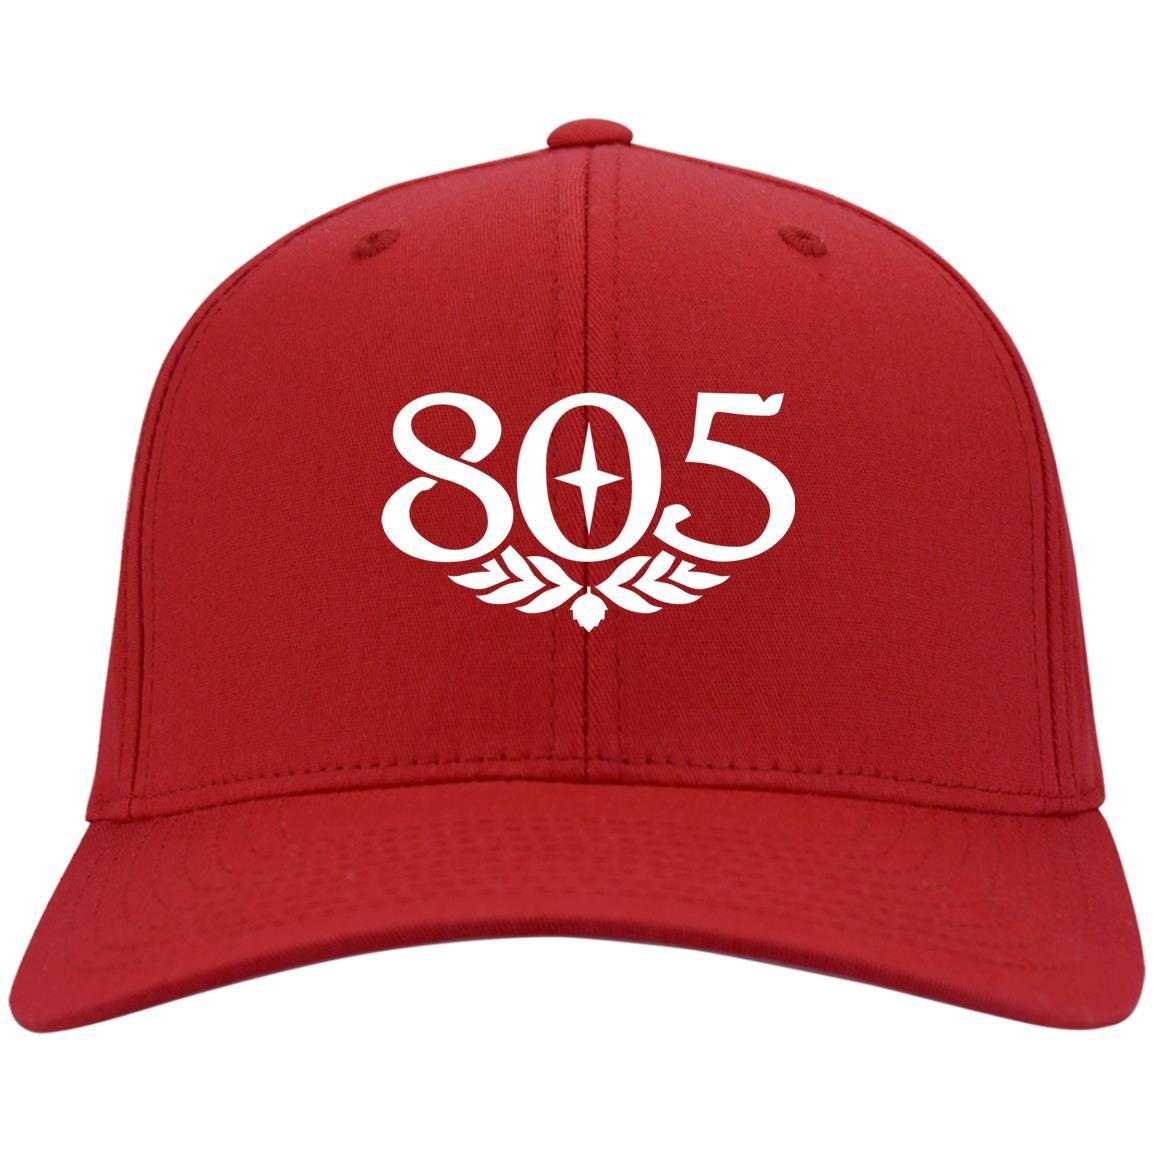 805 Beer - Port & Co. Twill Cap Red